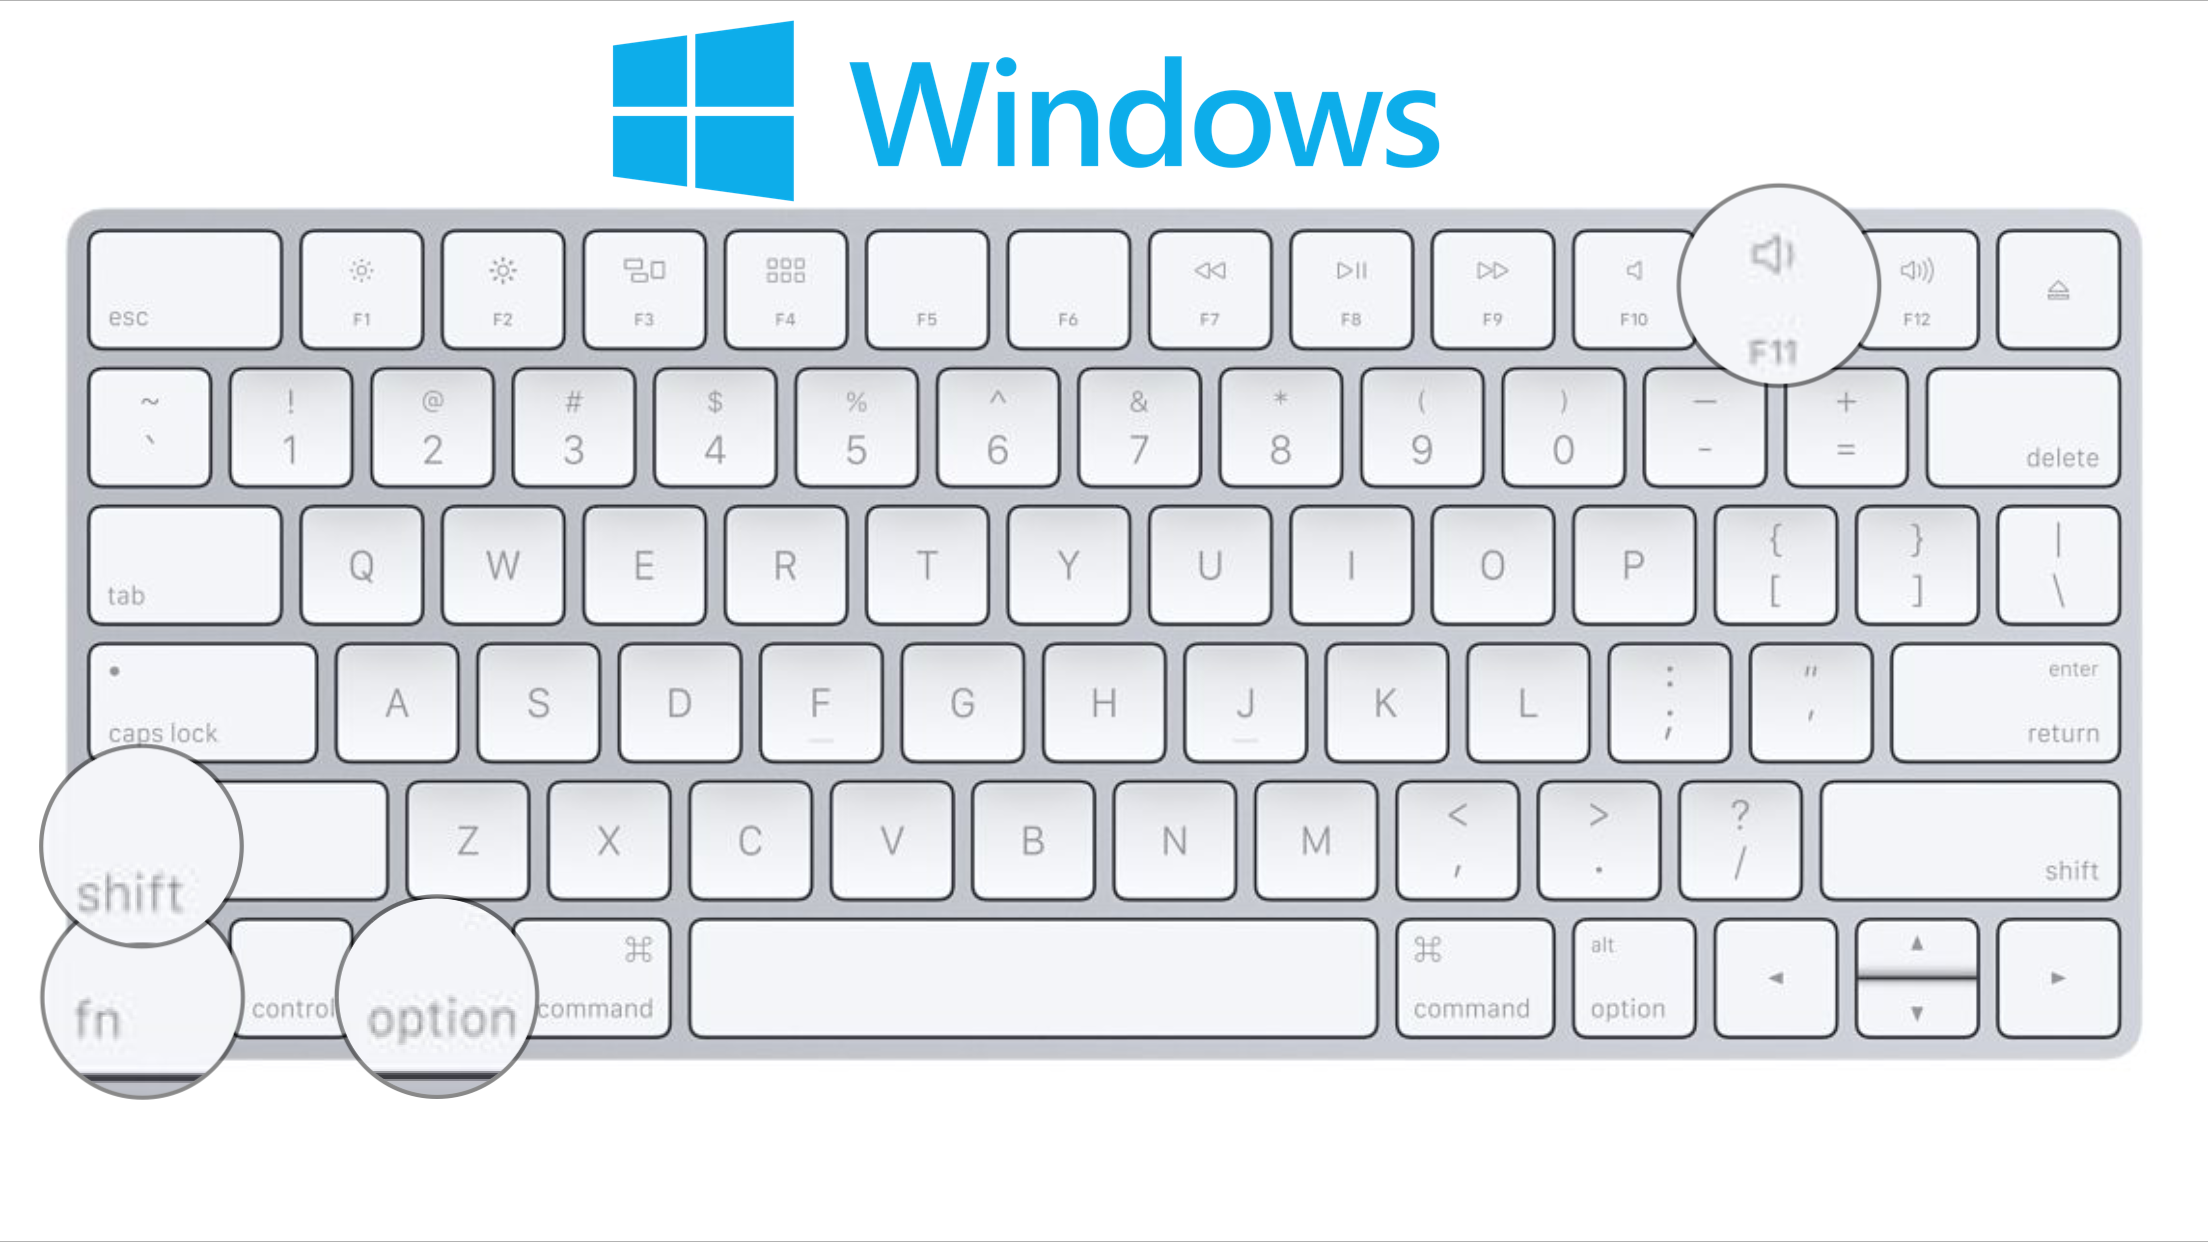 Boot camp taking screenshots in windows with apple keyboard biocorpaavc Images